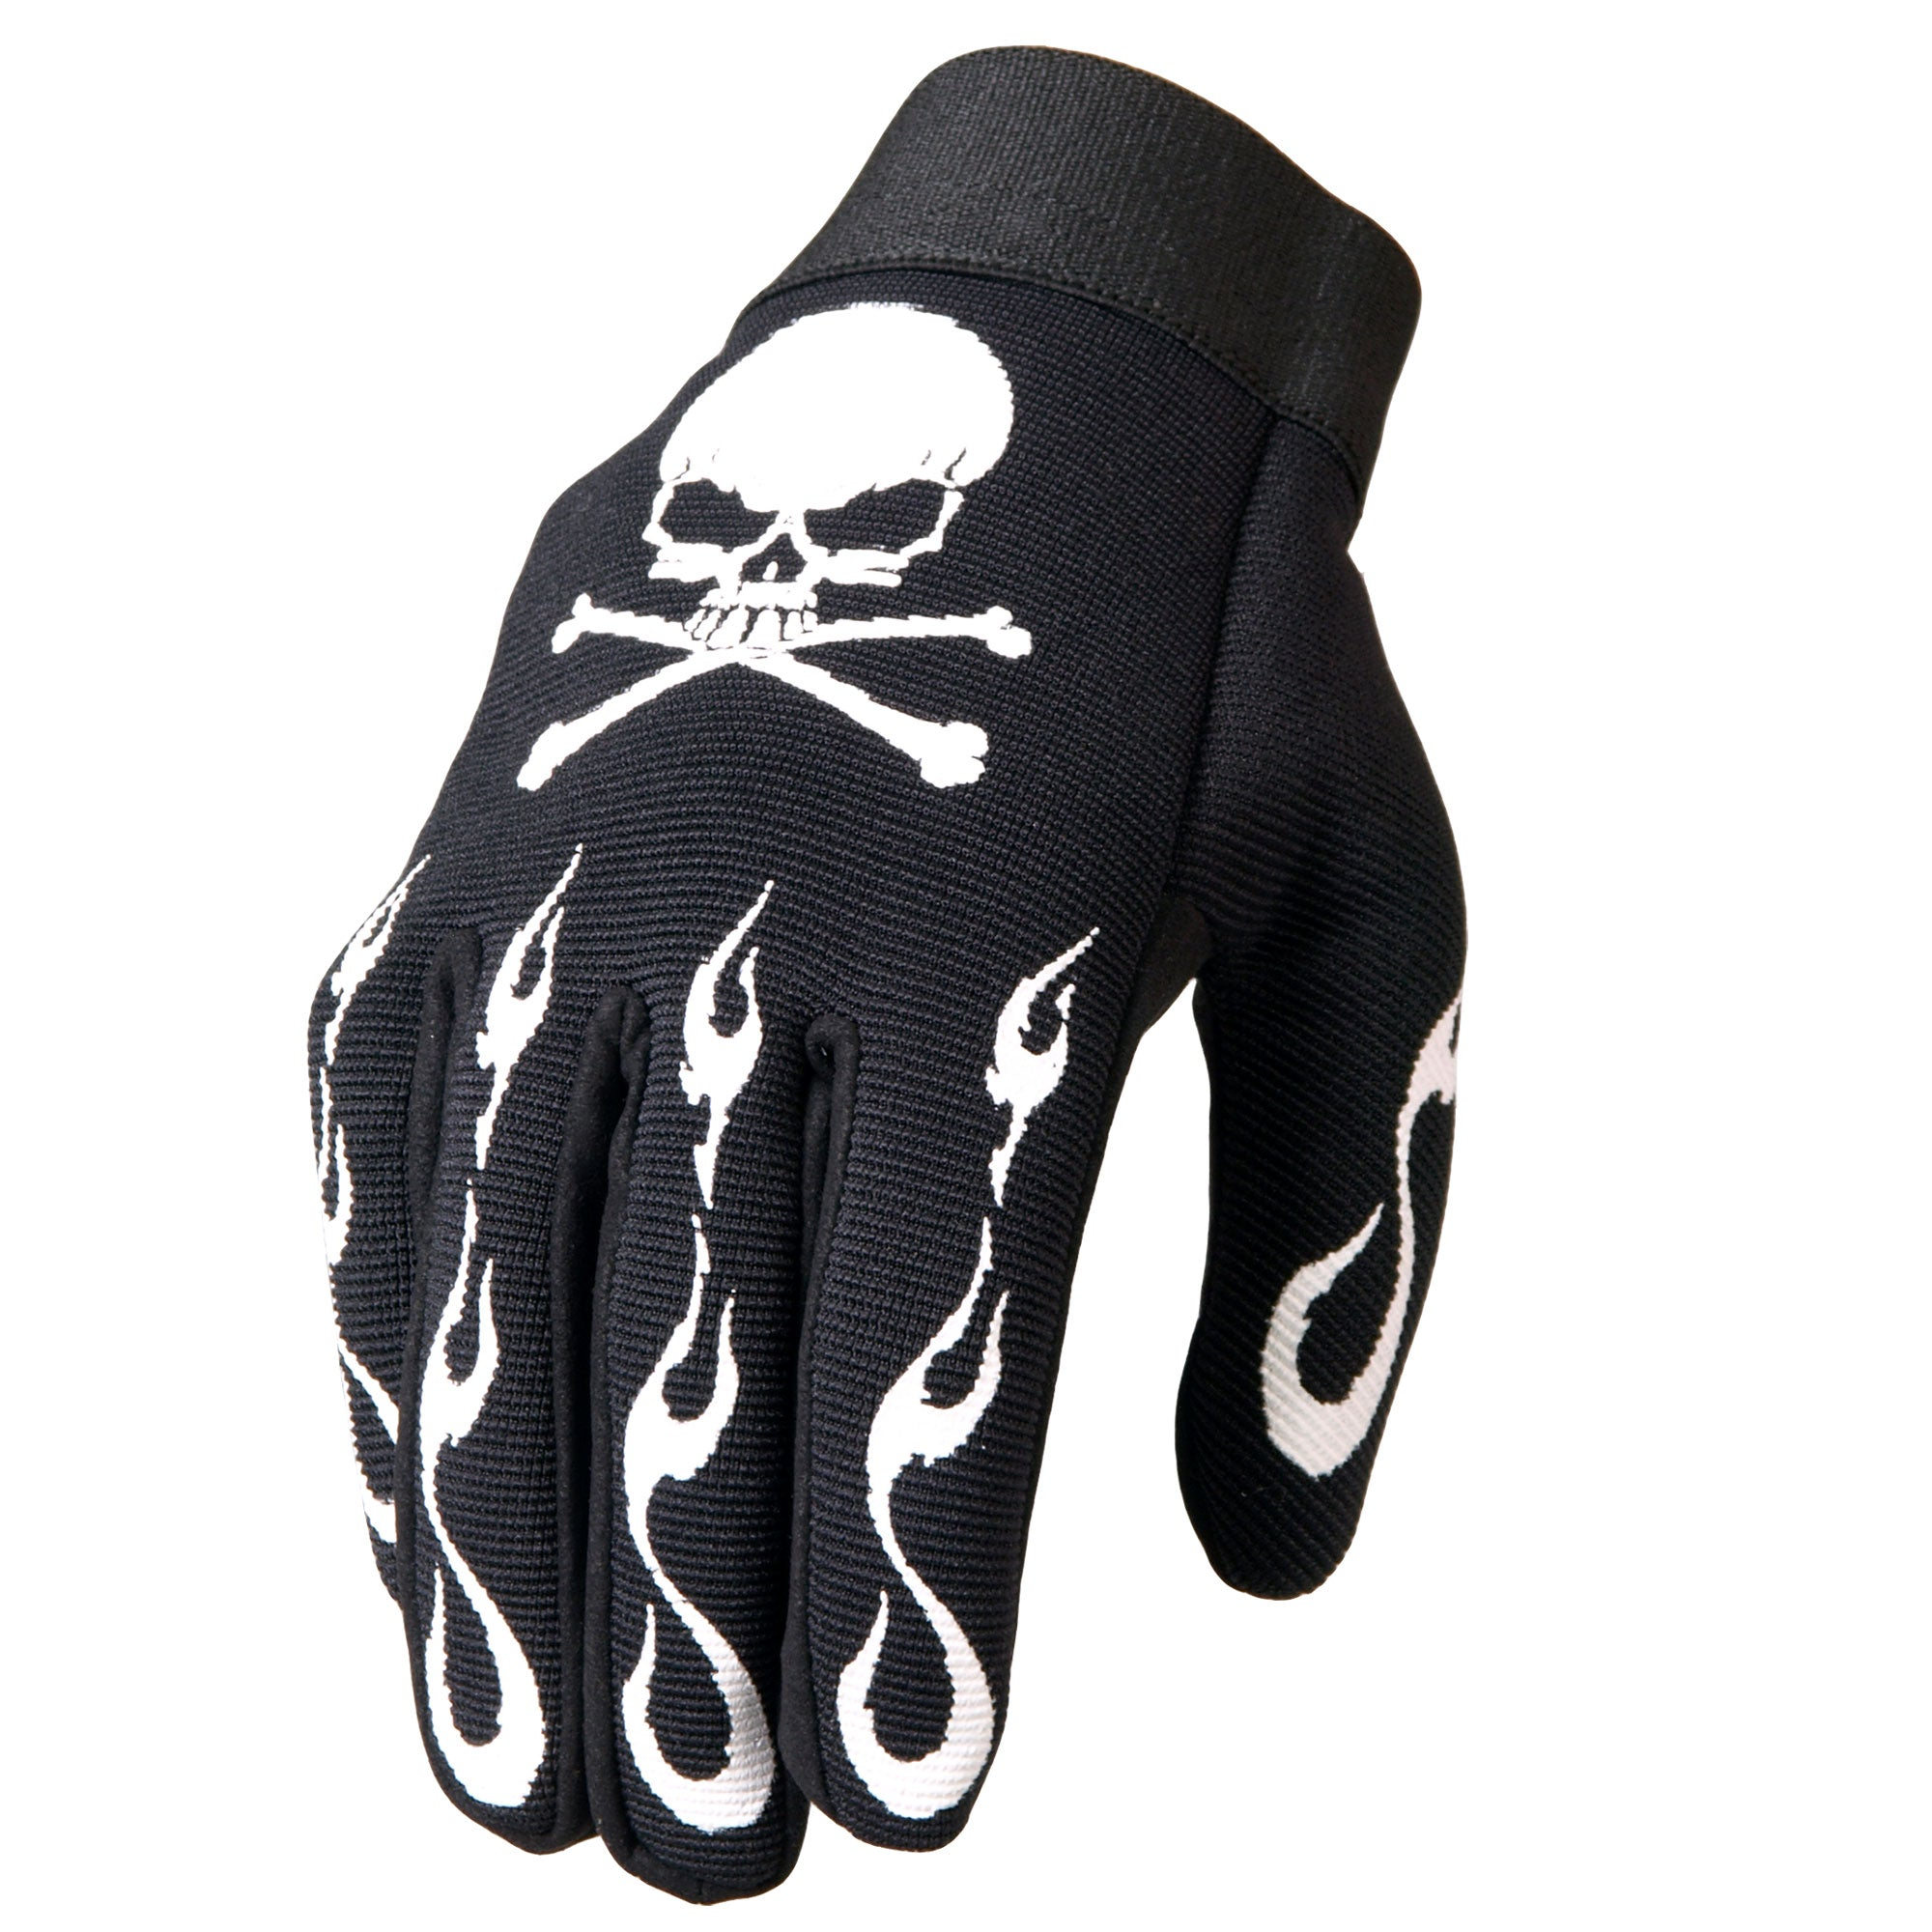 Hot Leathers GVM2006 Skull and Crossbones Mechanics Gloves